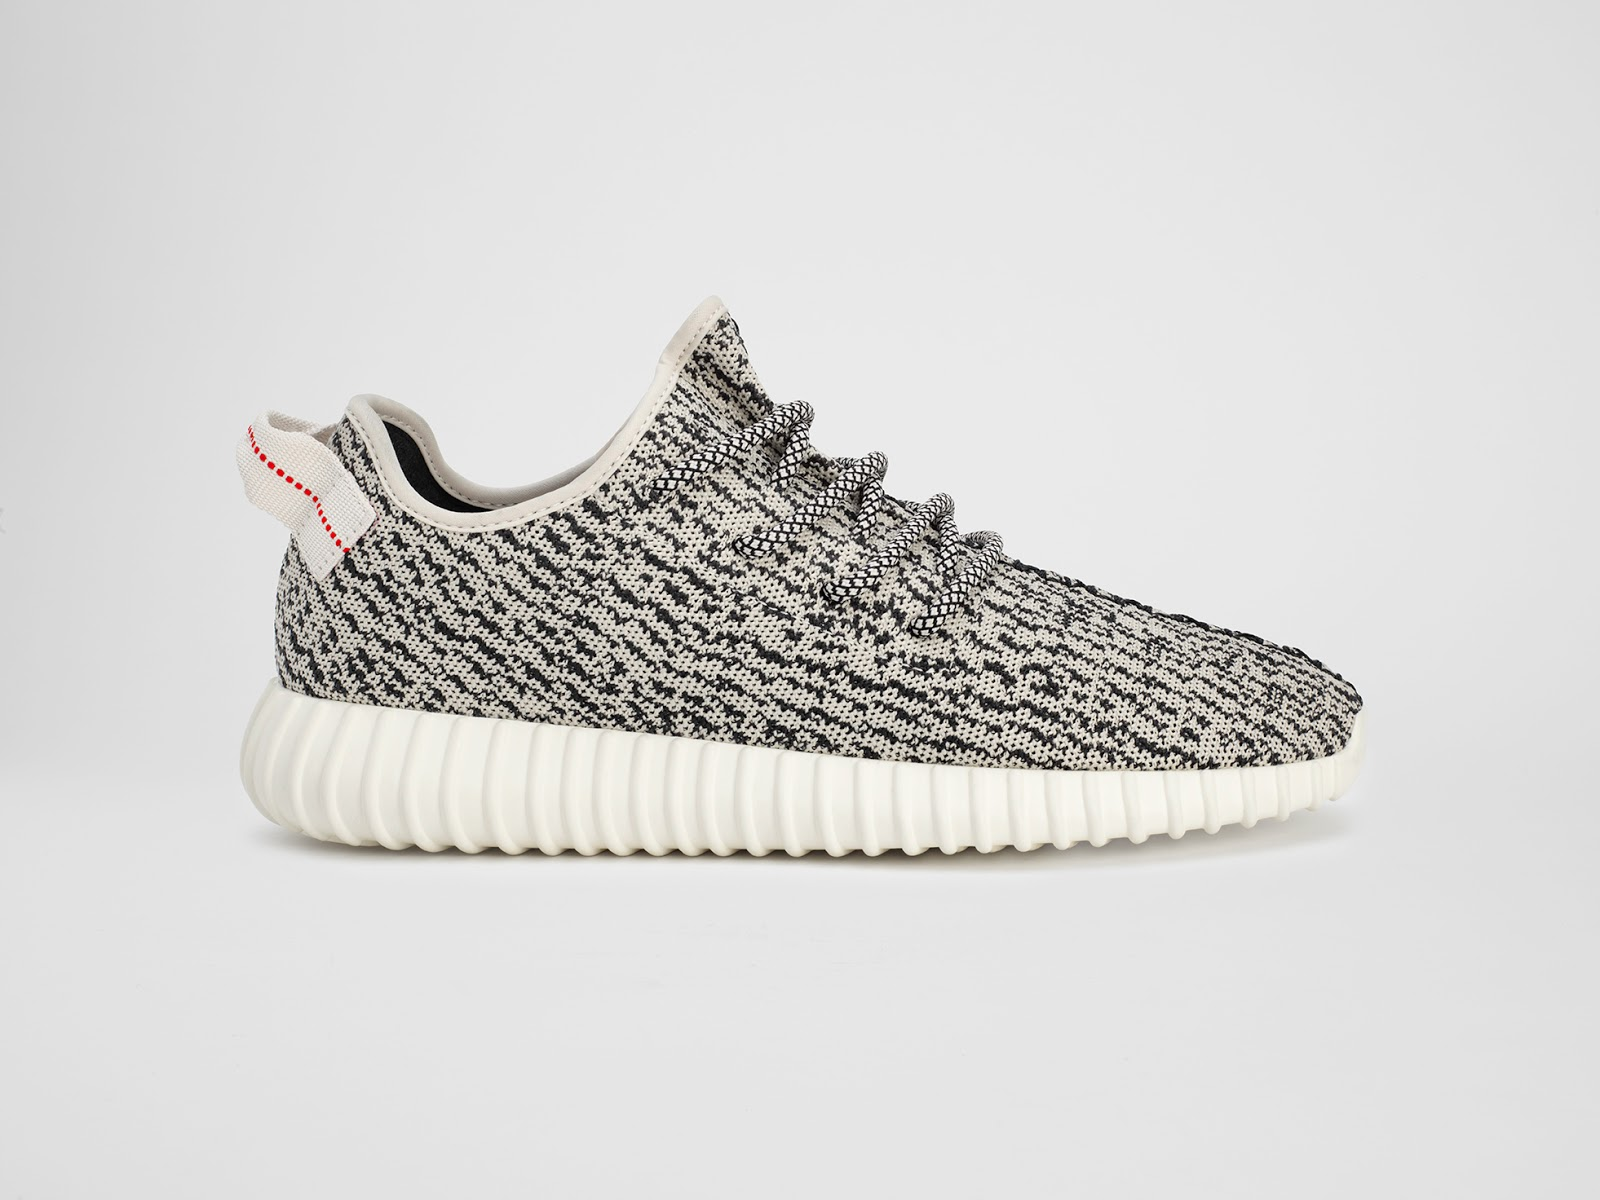 fd529150 The YEEZY BOOST 350 is composed of beautiful yet simple materials, speaking  to West's ambition of creating a clean, modern, effortless template for  footwear ...